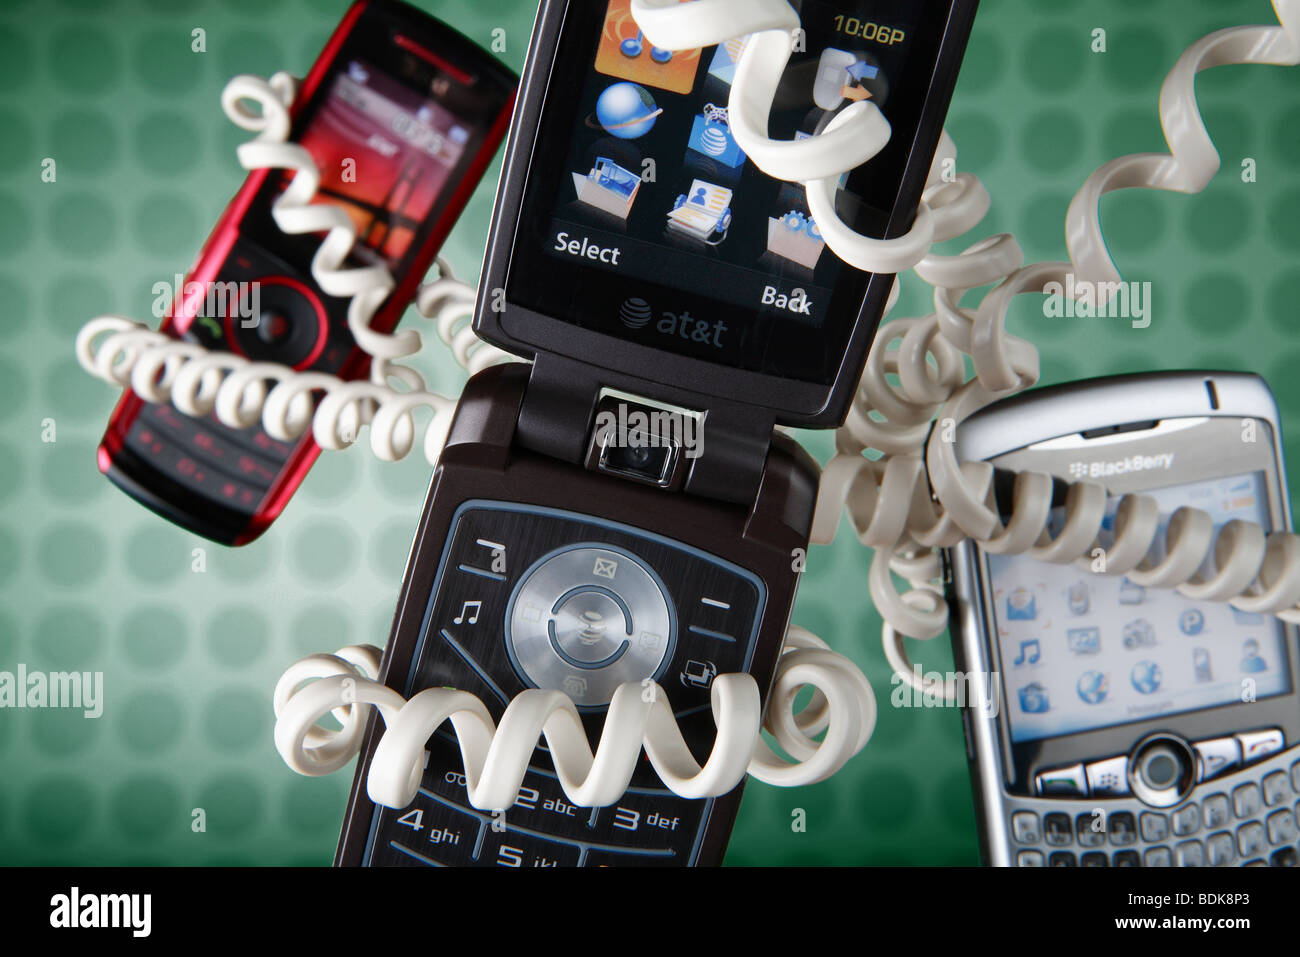 Cell phones floating on green background, wrapped with old fashioned coiled phone cord - Stock Image